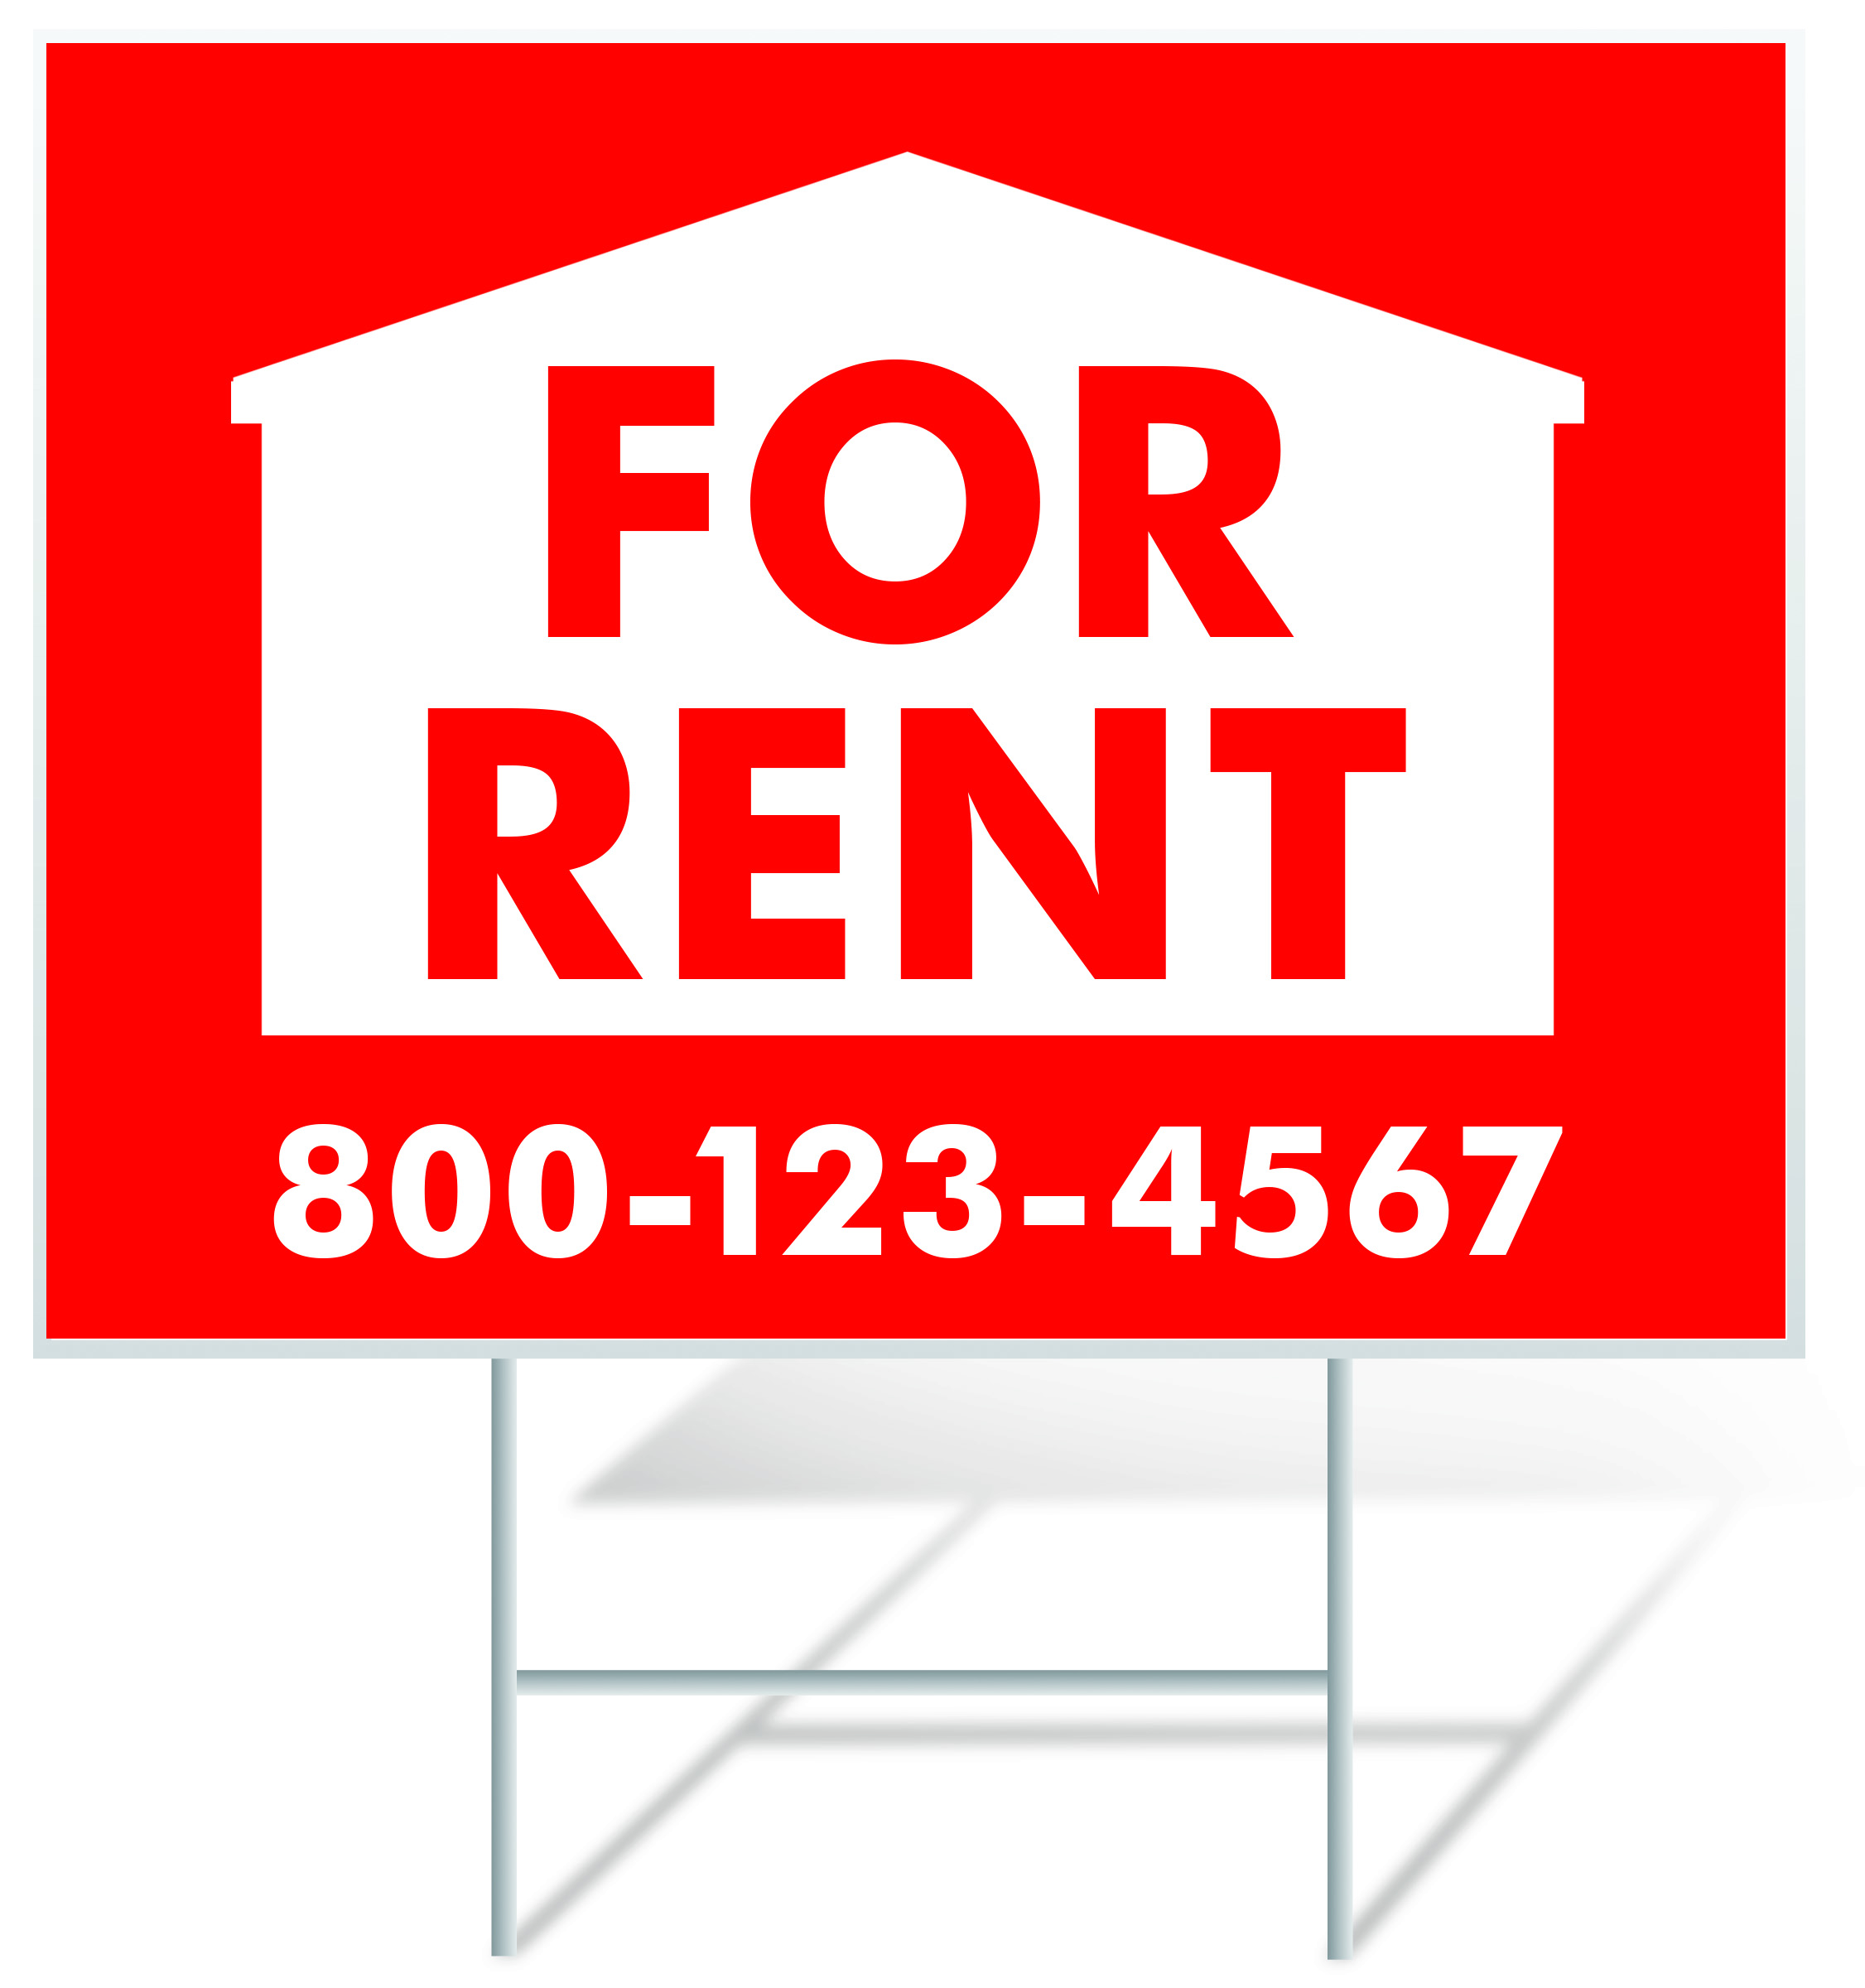 For Rent Lawn Sign Example | LawnSigns.com